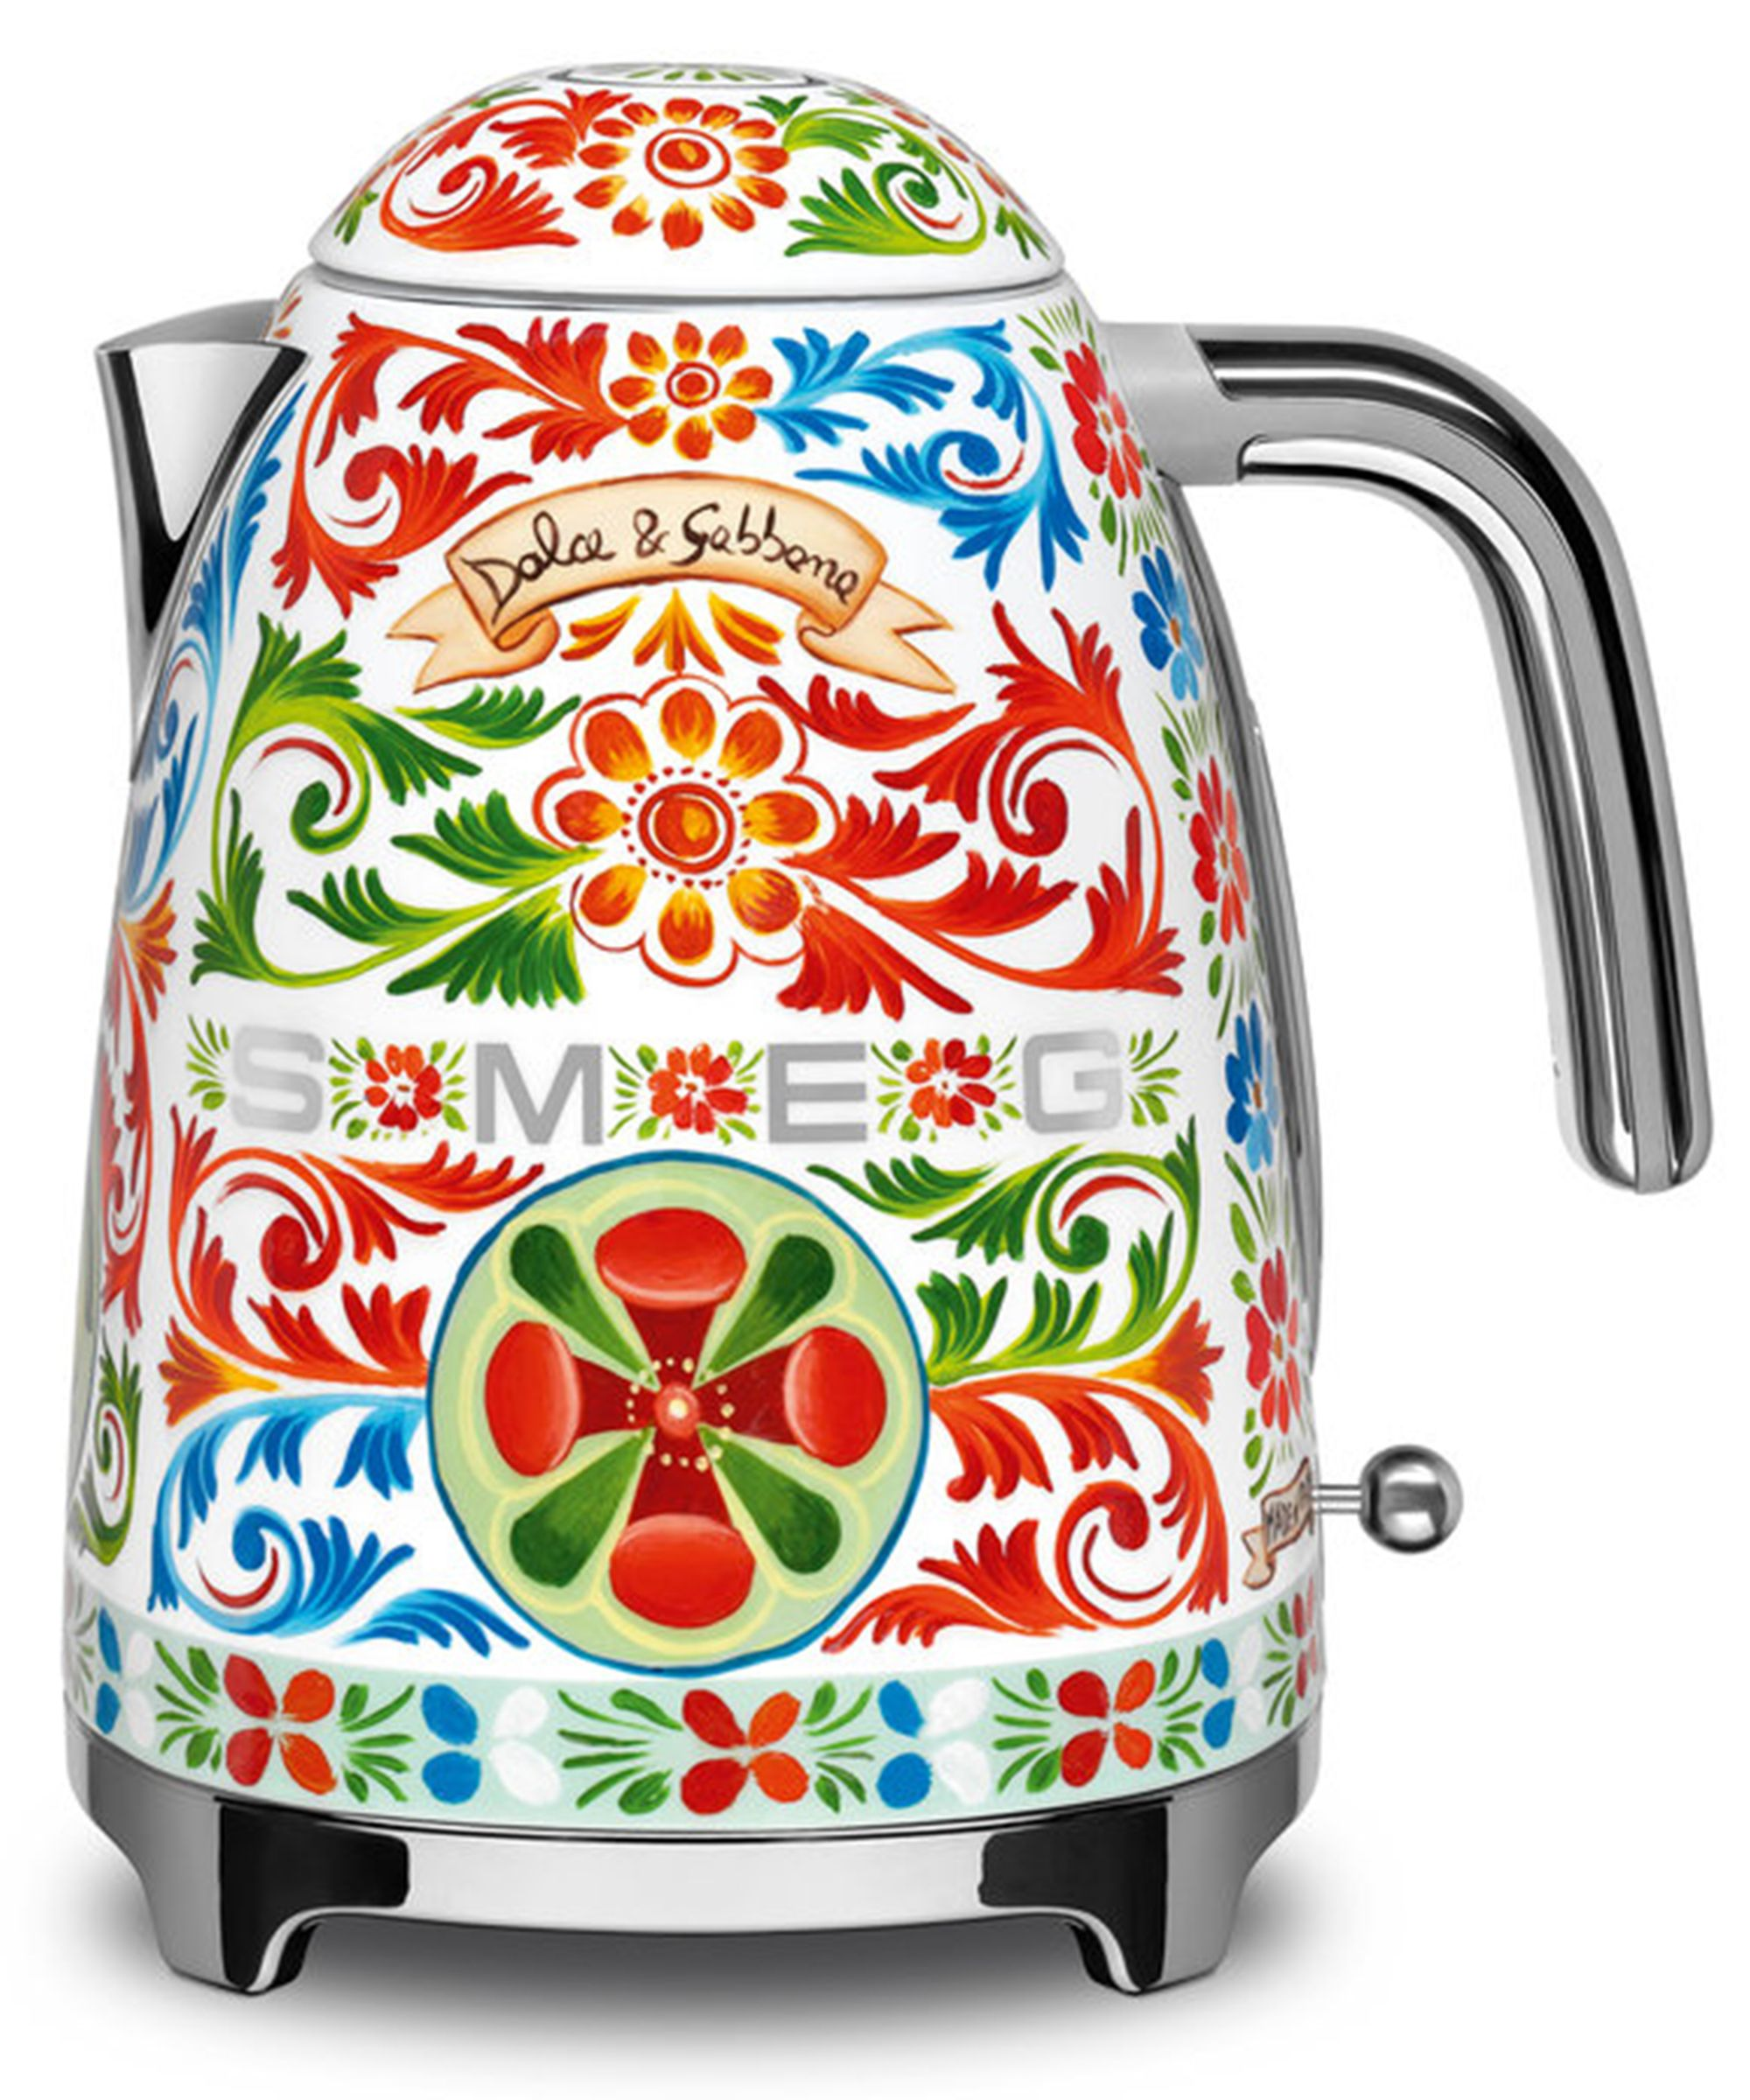 Smeg Kitchen Appliance Kettle by Dolce & Gabbana